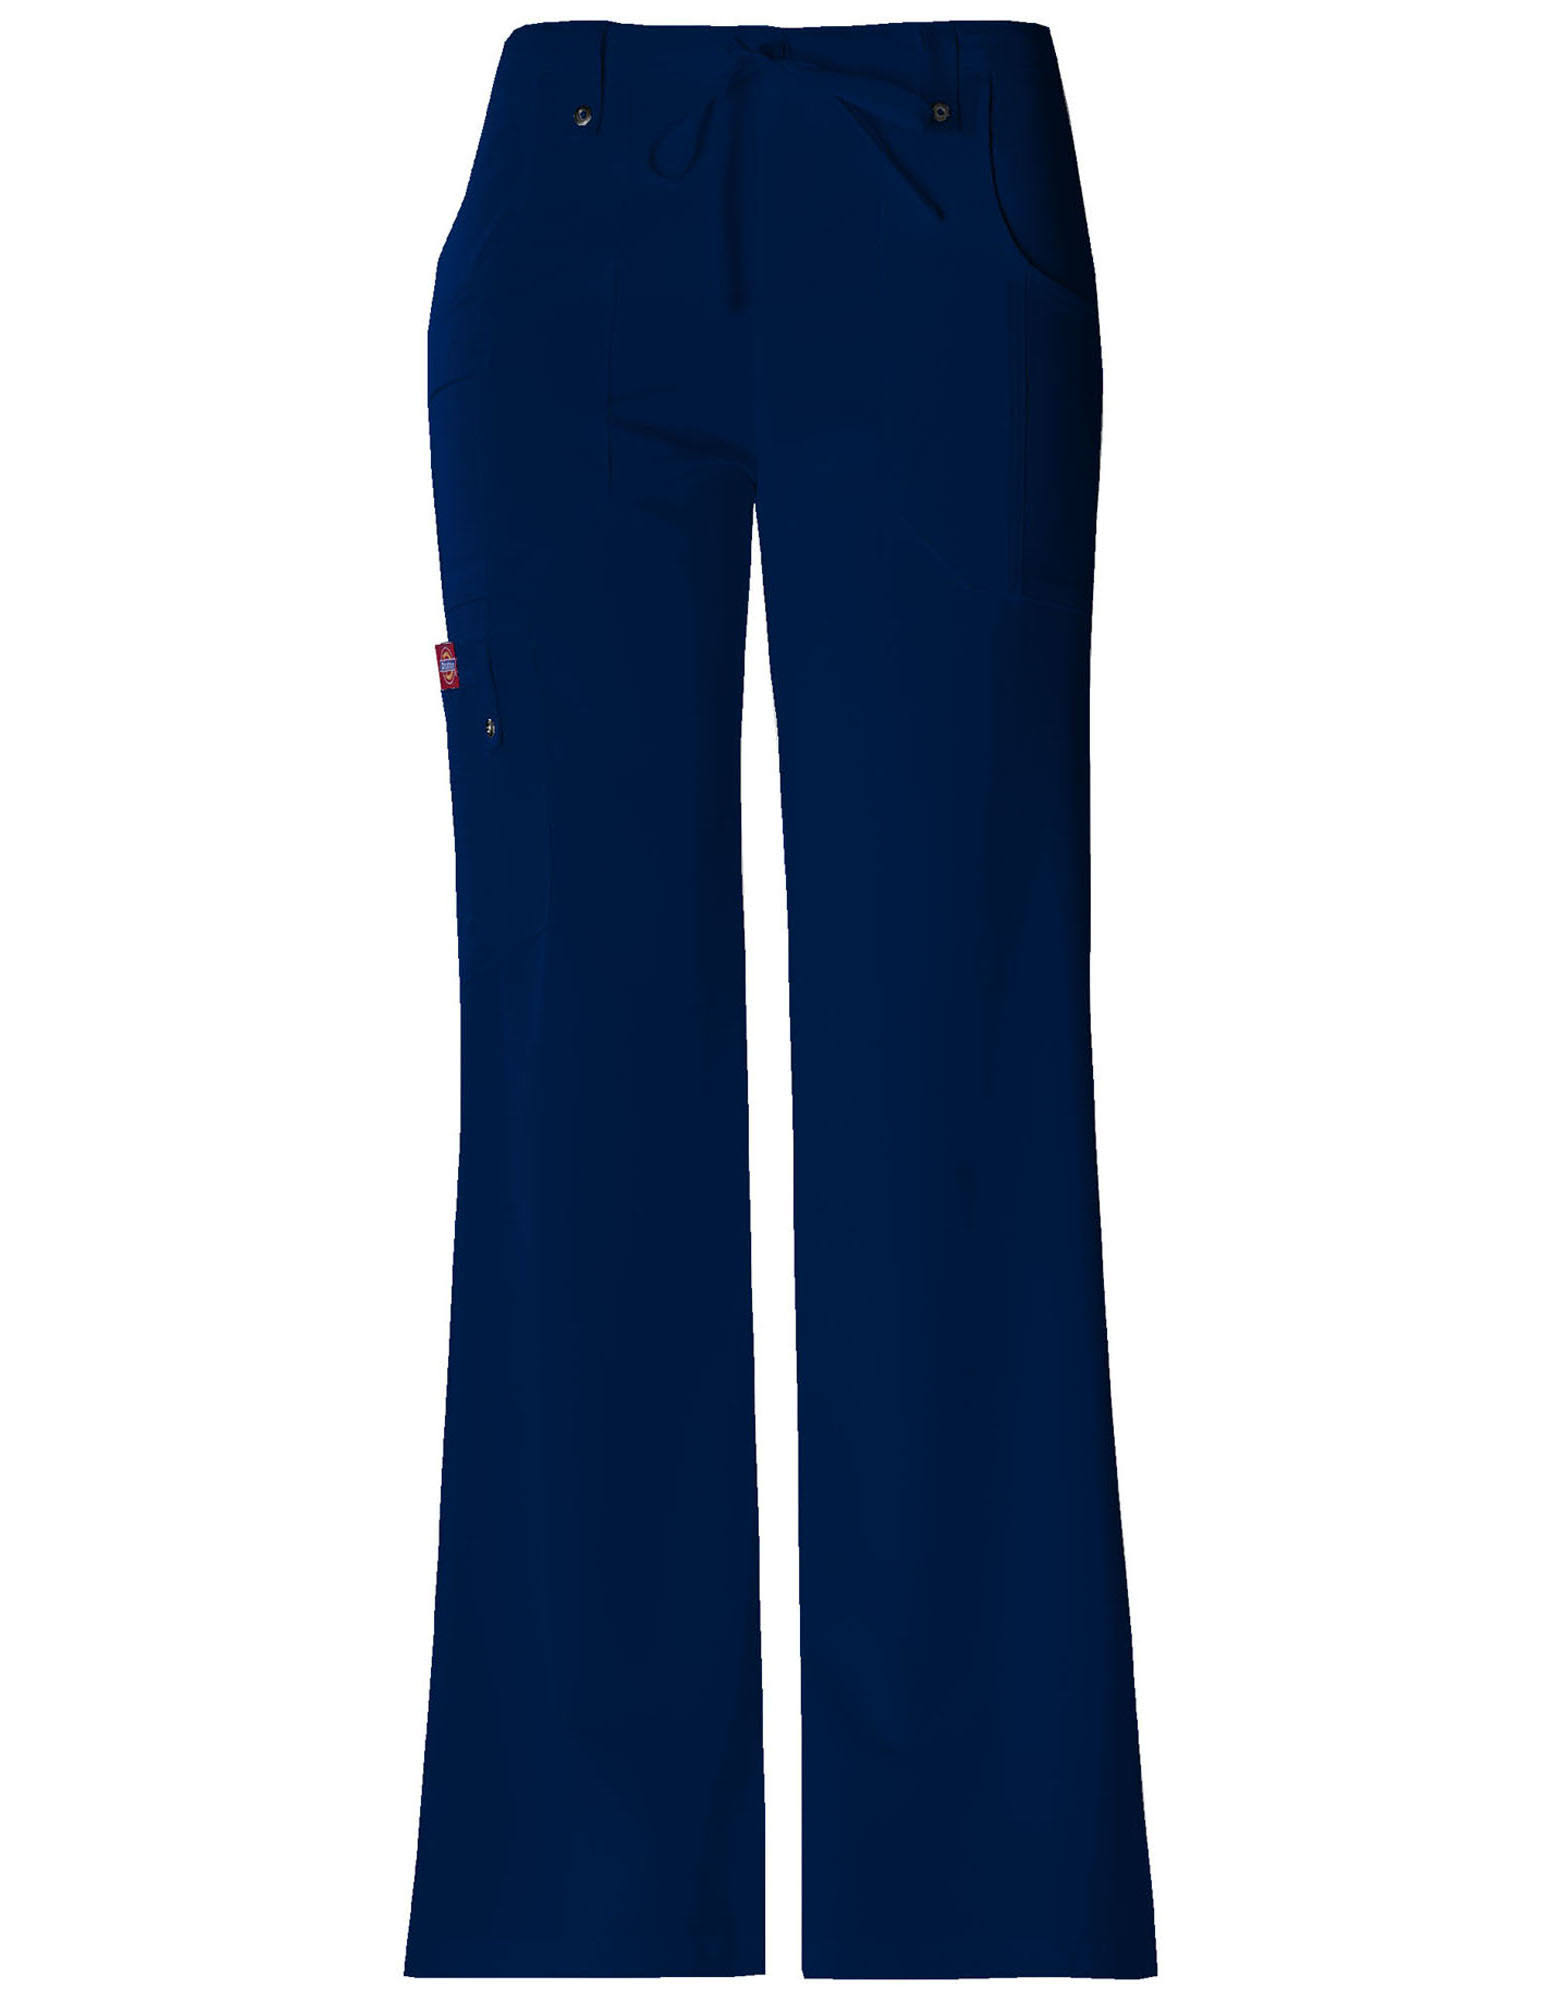 Dickies Womens Xtreme Stretch Fit Drawstring Flare Leg Pants - Navy, X-Large